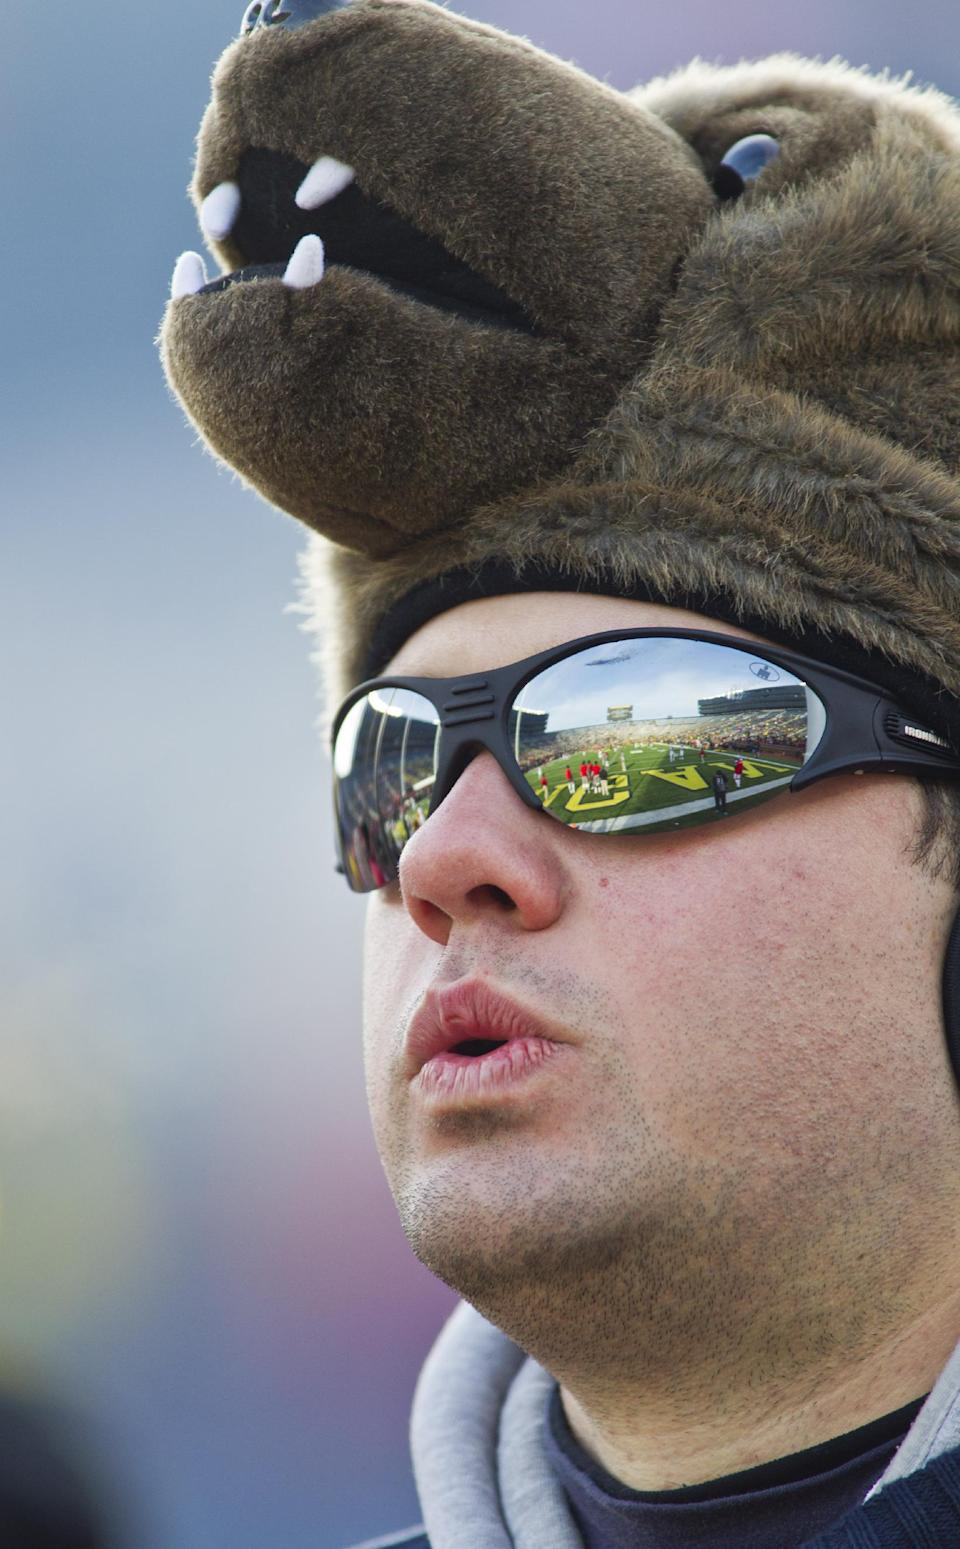 Michigan alum Vincent Coughlin from Chicago, wears a wolverine headgear in the Michigan Stadium stands before an NCAA college football game against Ohio State in Ann Arbor, Mich., Saturday, Nov. 30, 2013. (AP Photo/Tony Ding)